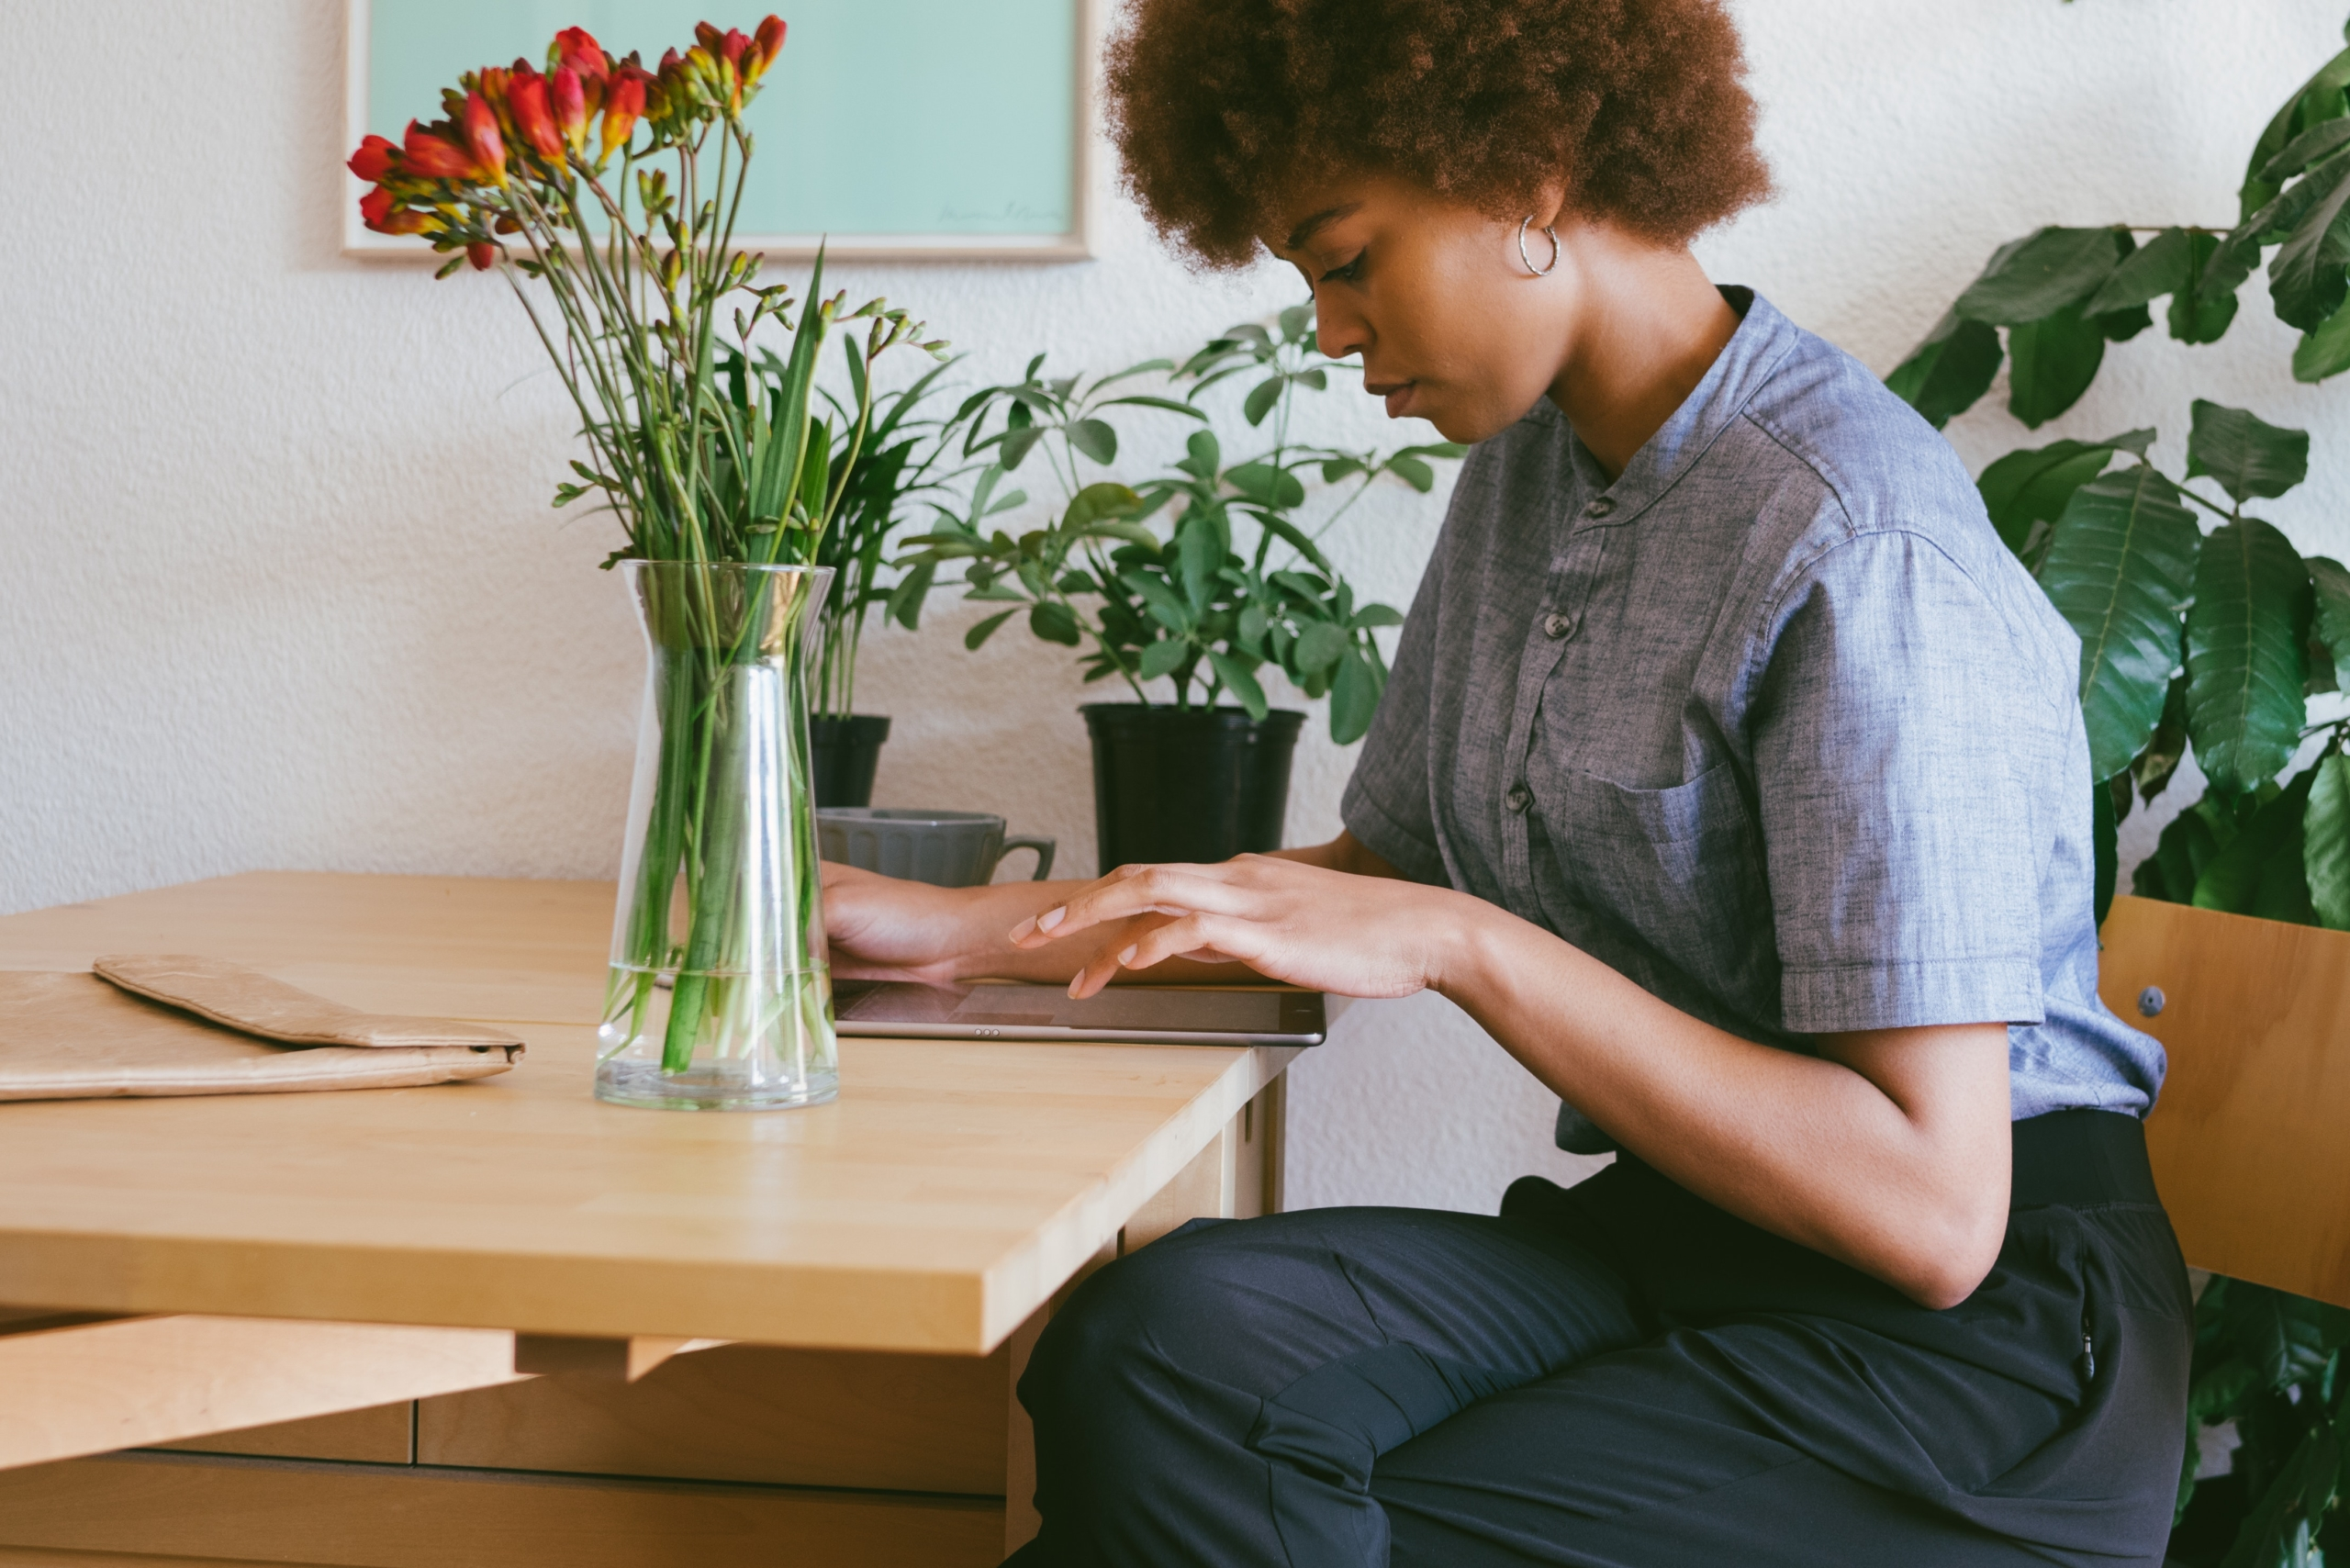 20 tips for working from home through the COVID-19 pandemic